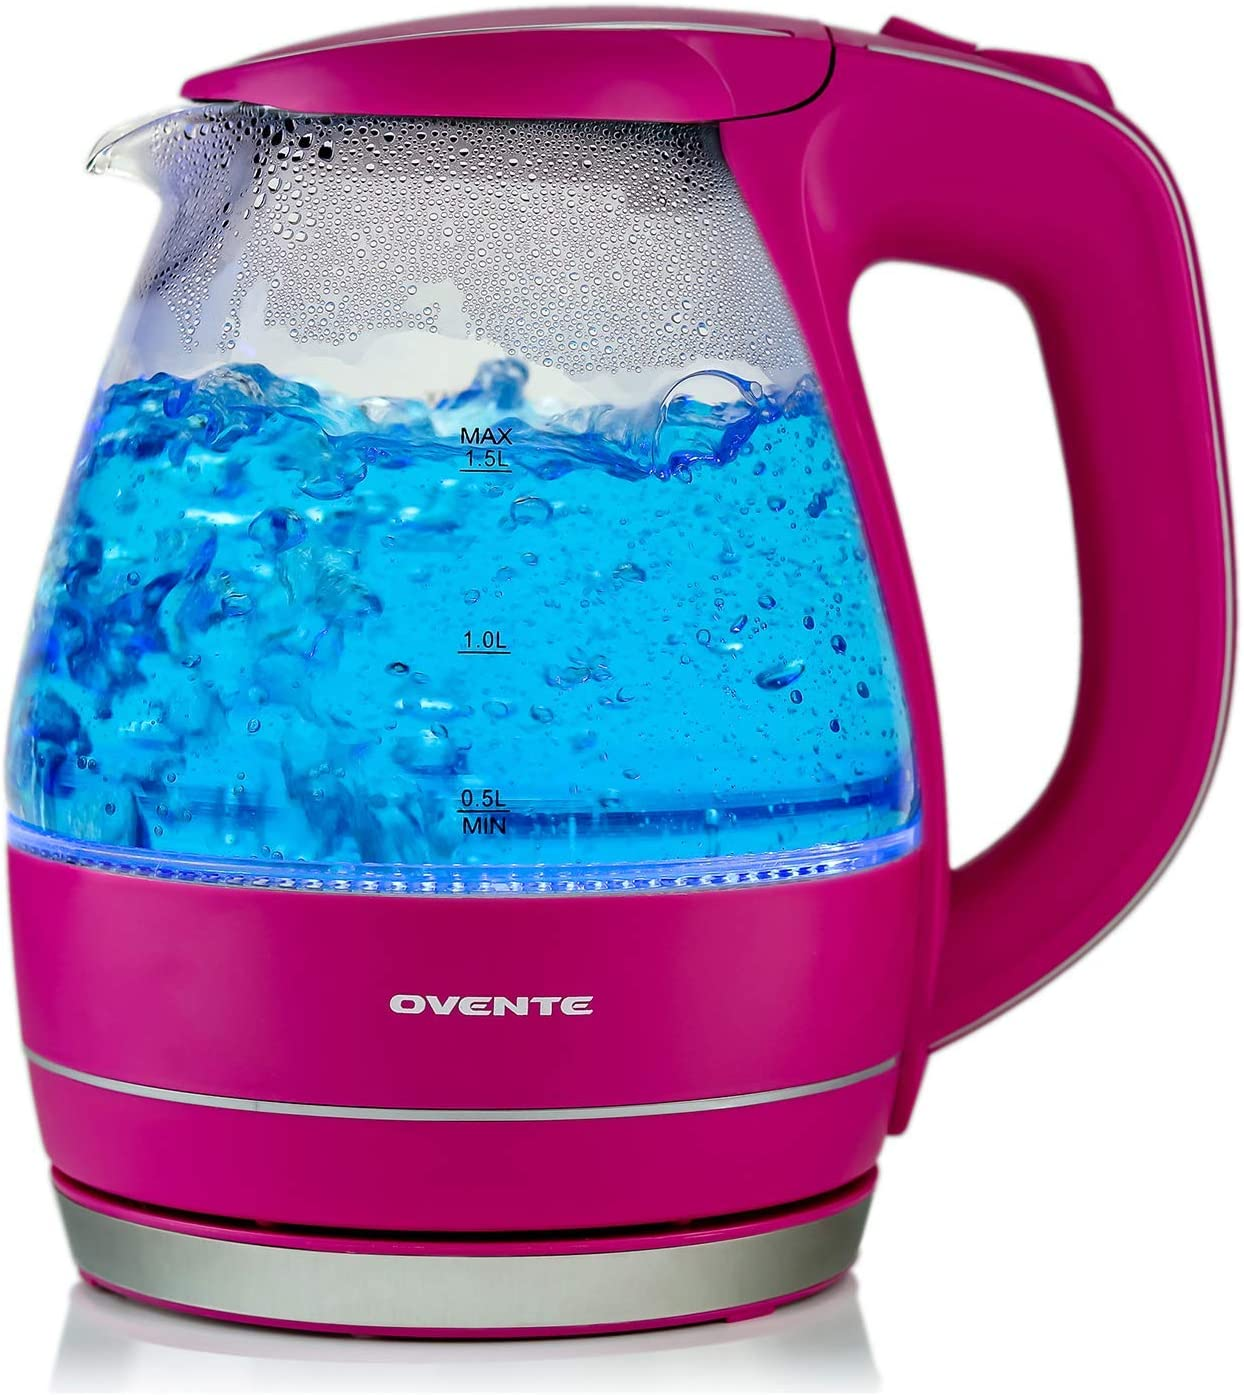 OVENTE 1.5L BPA-Free Glass Electric Kettle, Fast Heating with Auto Shut-Off and Boil-Dry Protection, Fuchsia Pink (KG83F)